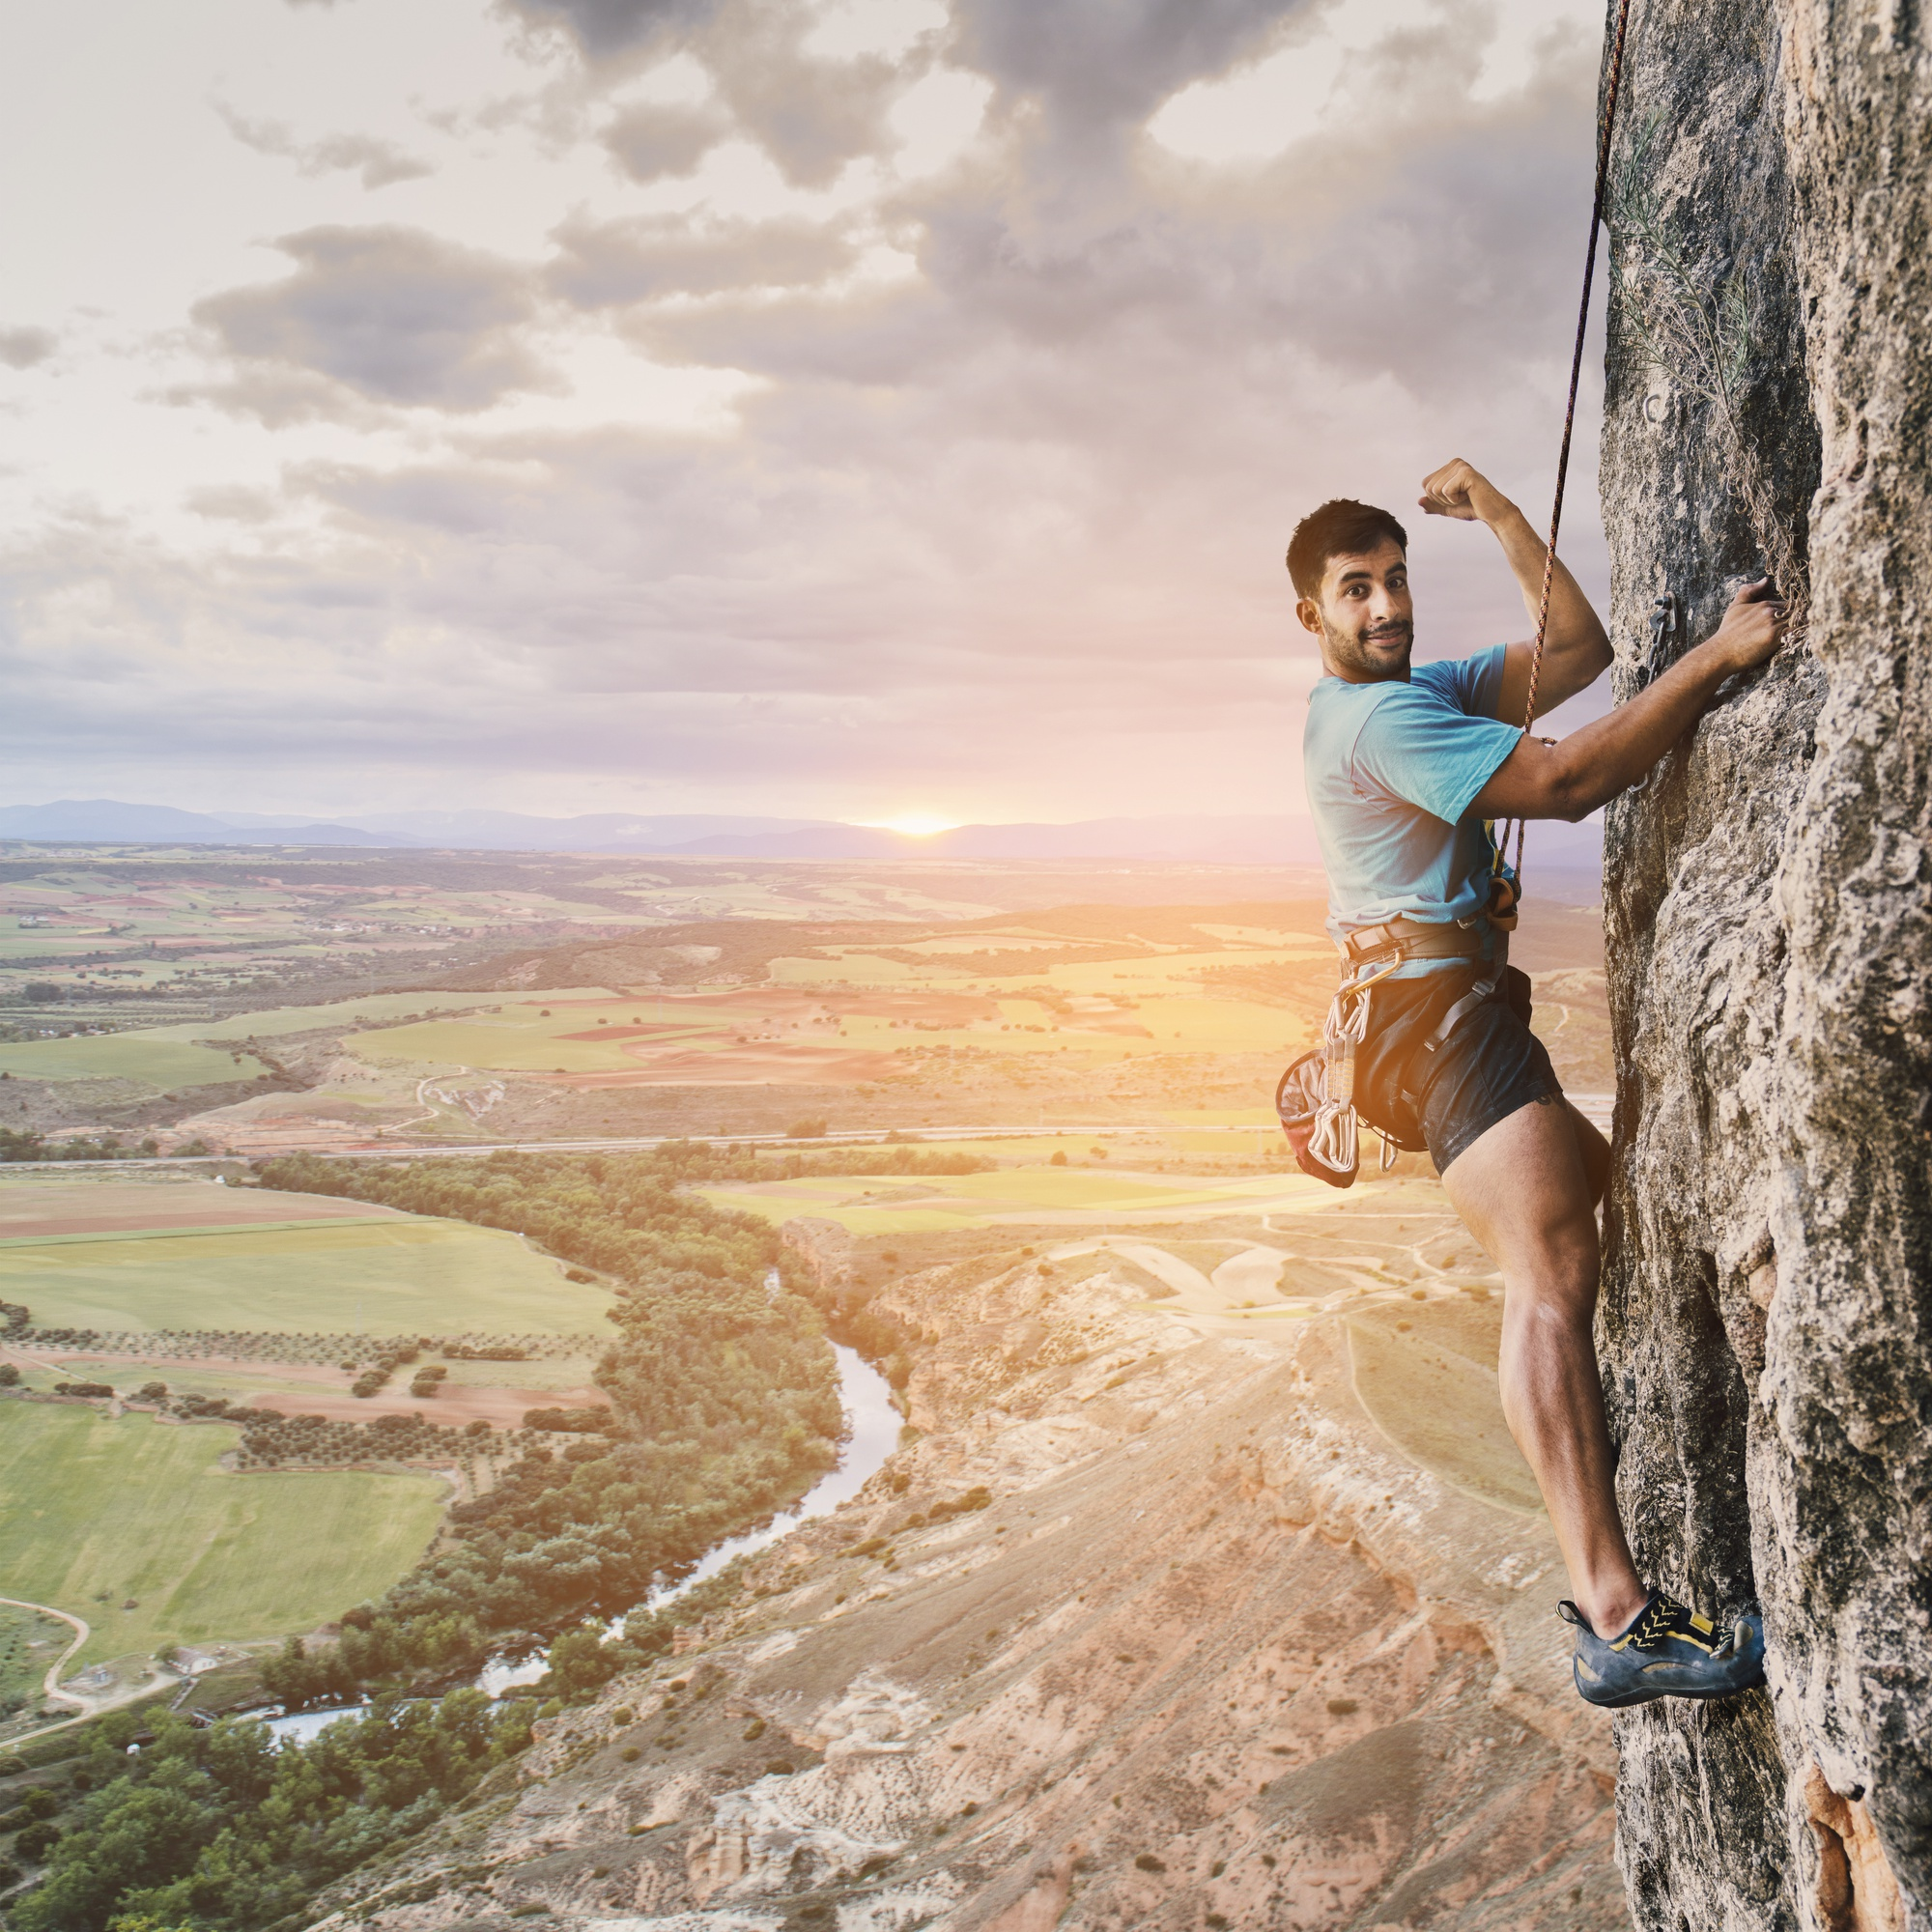 Climber on wall with landscape